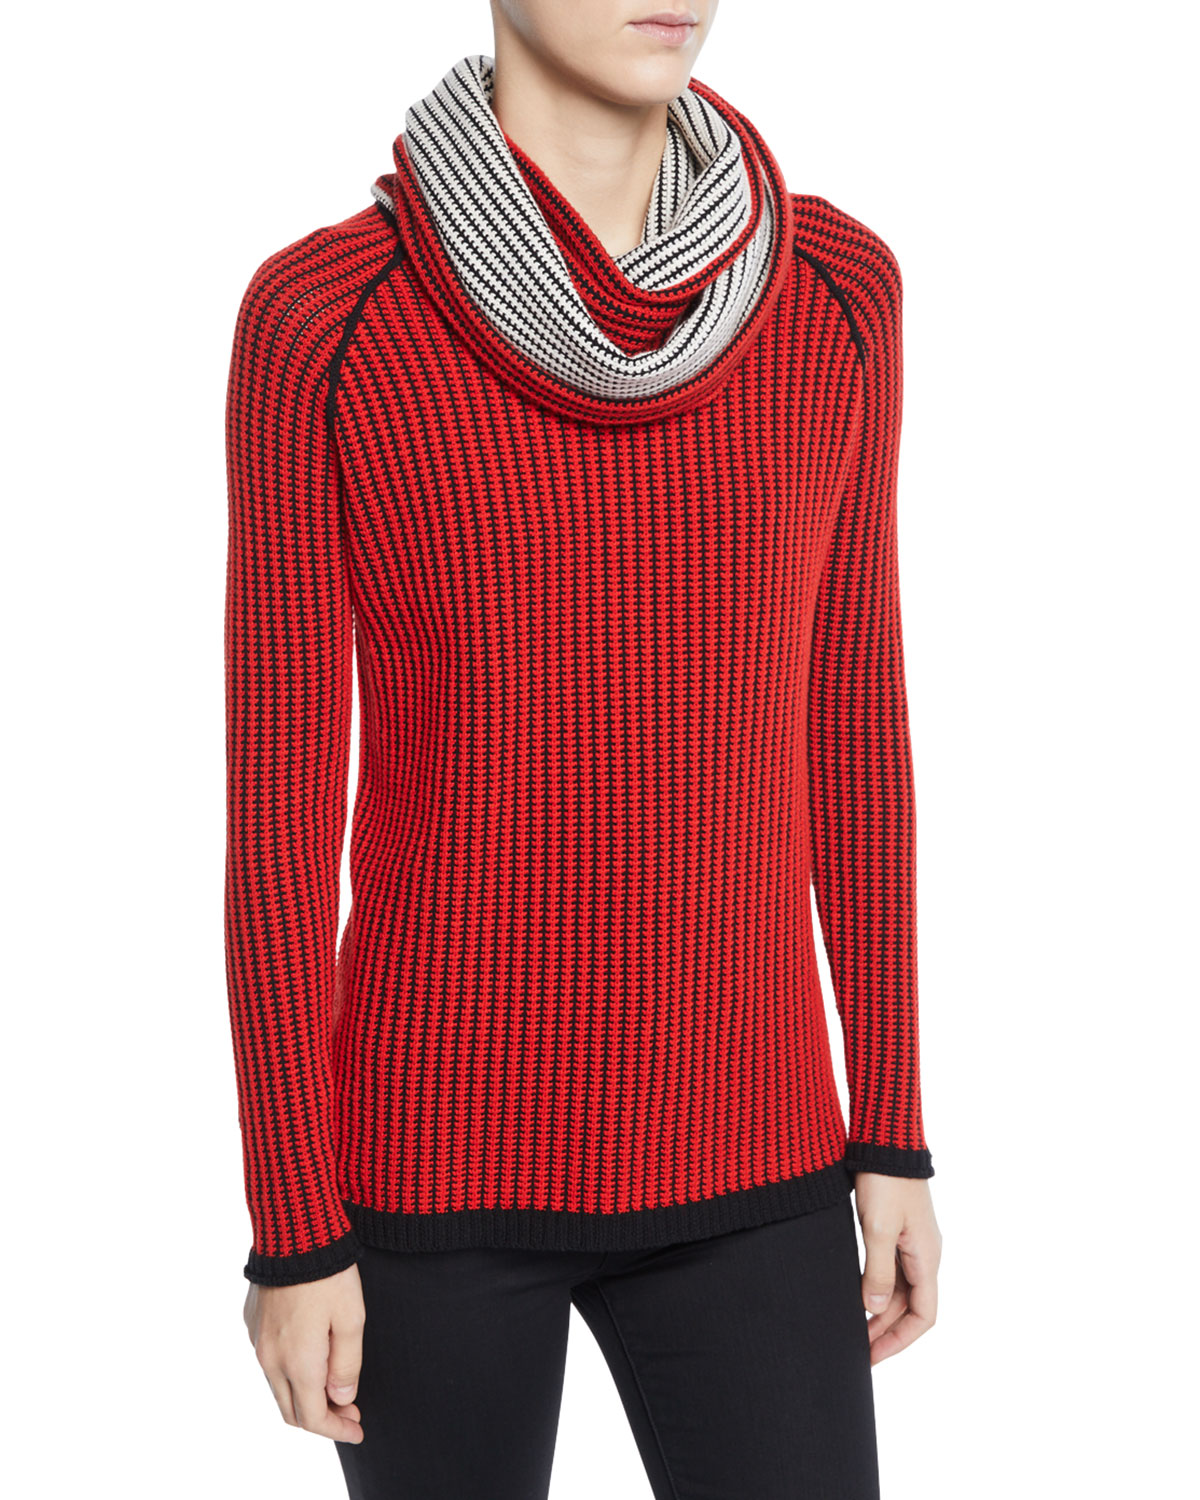 Chain Stitch Cashmere Sweater With Scarf, Red